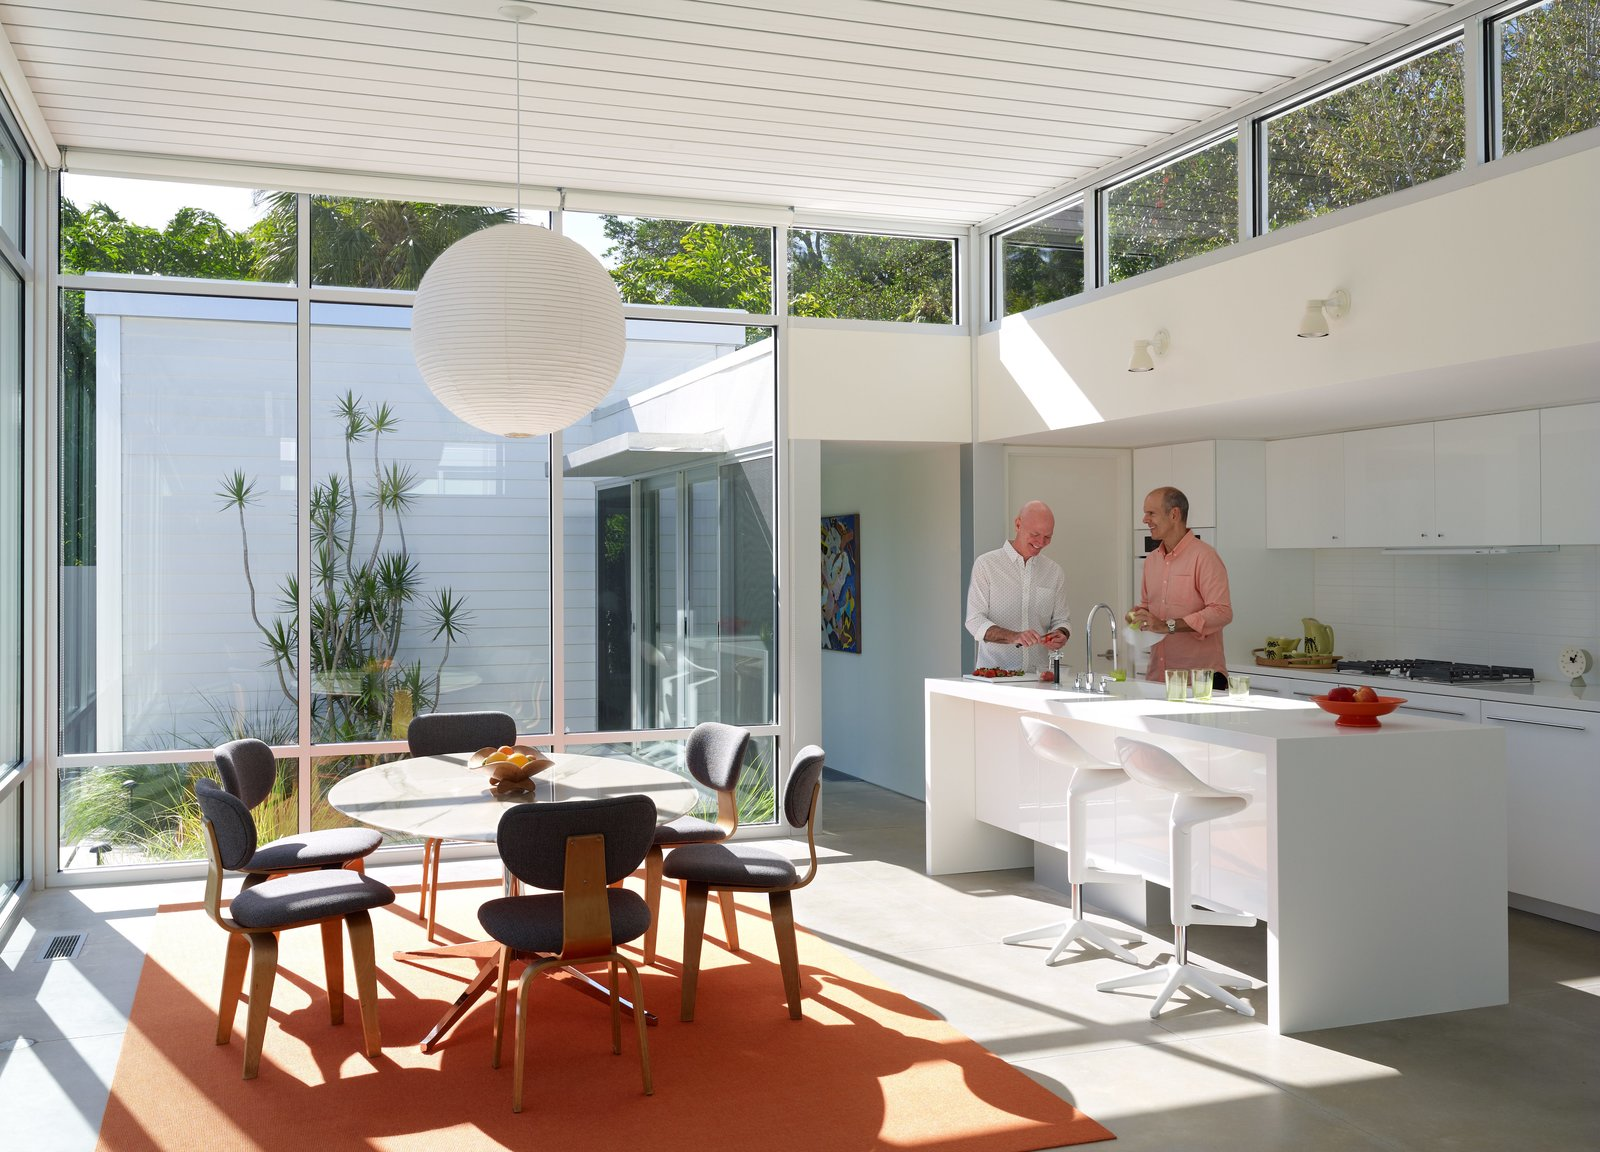 Kitchen, White, Wall, Pendant, Concrete, and Cooktops In the kitchen, Pirman and Tetreault gather around a custom Corian island with a Tara faucet by Dornbracht. Vintage Cees Braakman Combex series chairs and a marble Florence Knoll table bring natural materials to an architectural shell built from concrete, glass, and steel.  Best Kitchen Concrete White Cooktops Photos from This Sparkling New Home Is a Perfect Remake of Classic Sarasota School Modernism